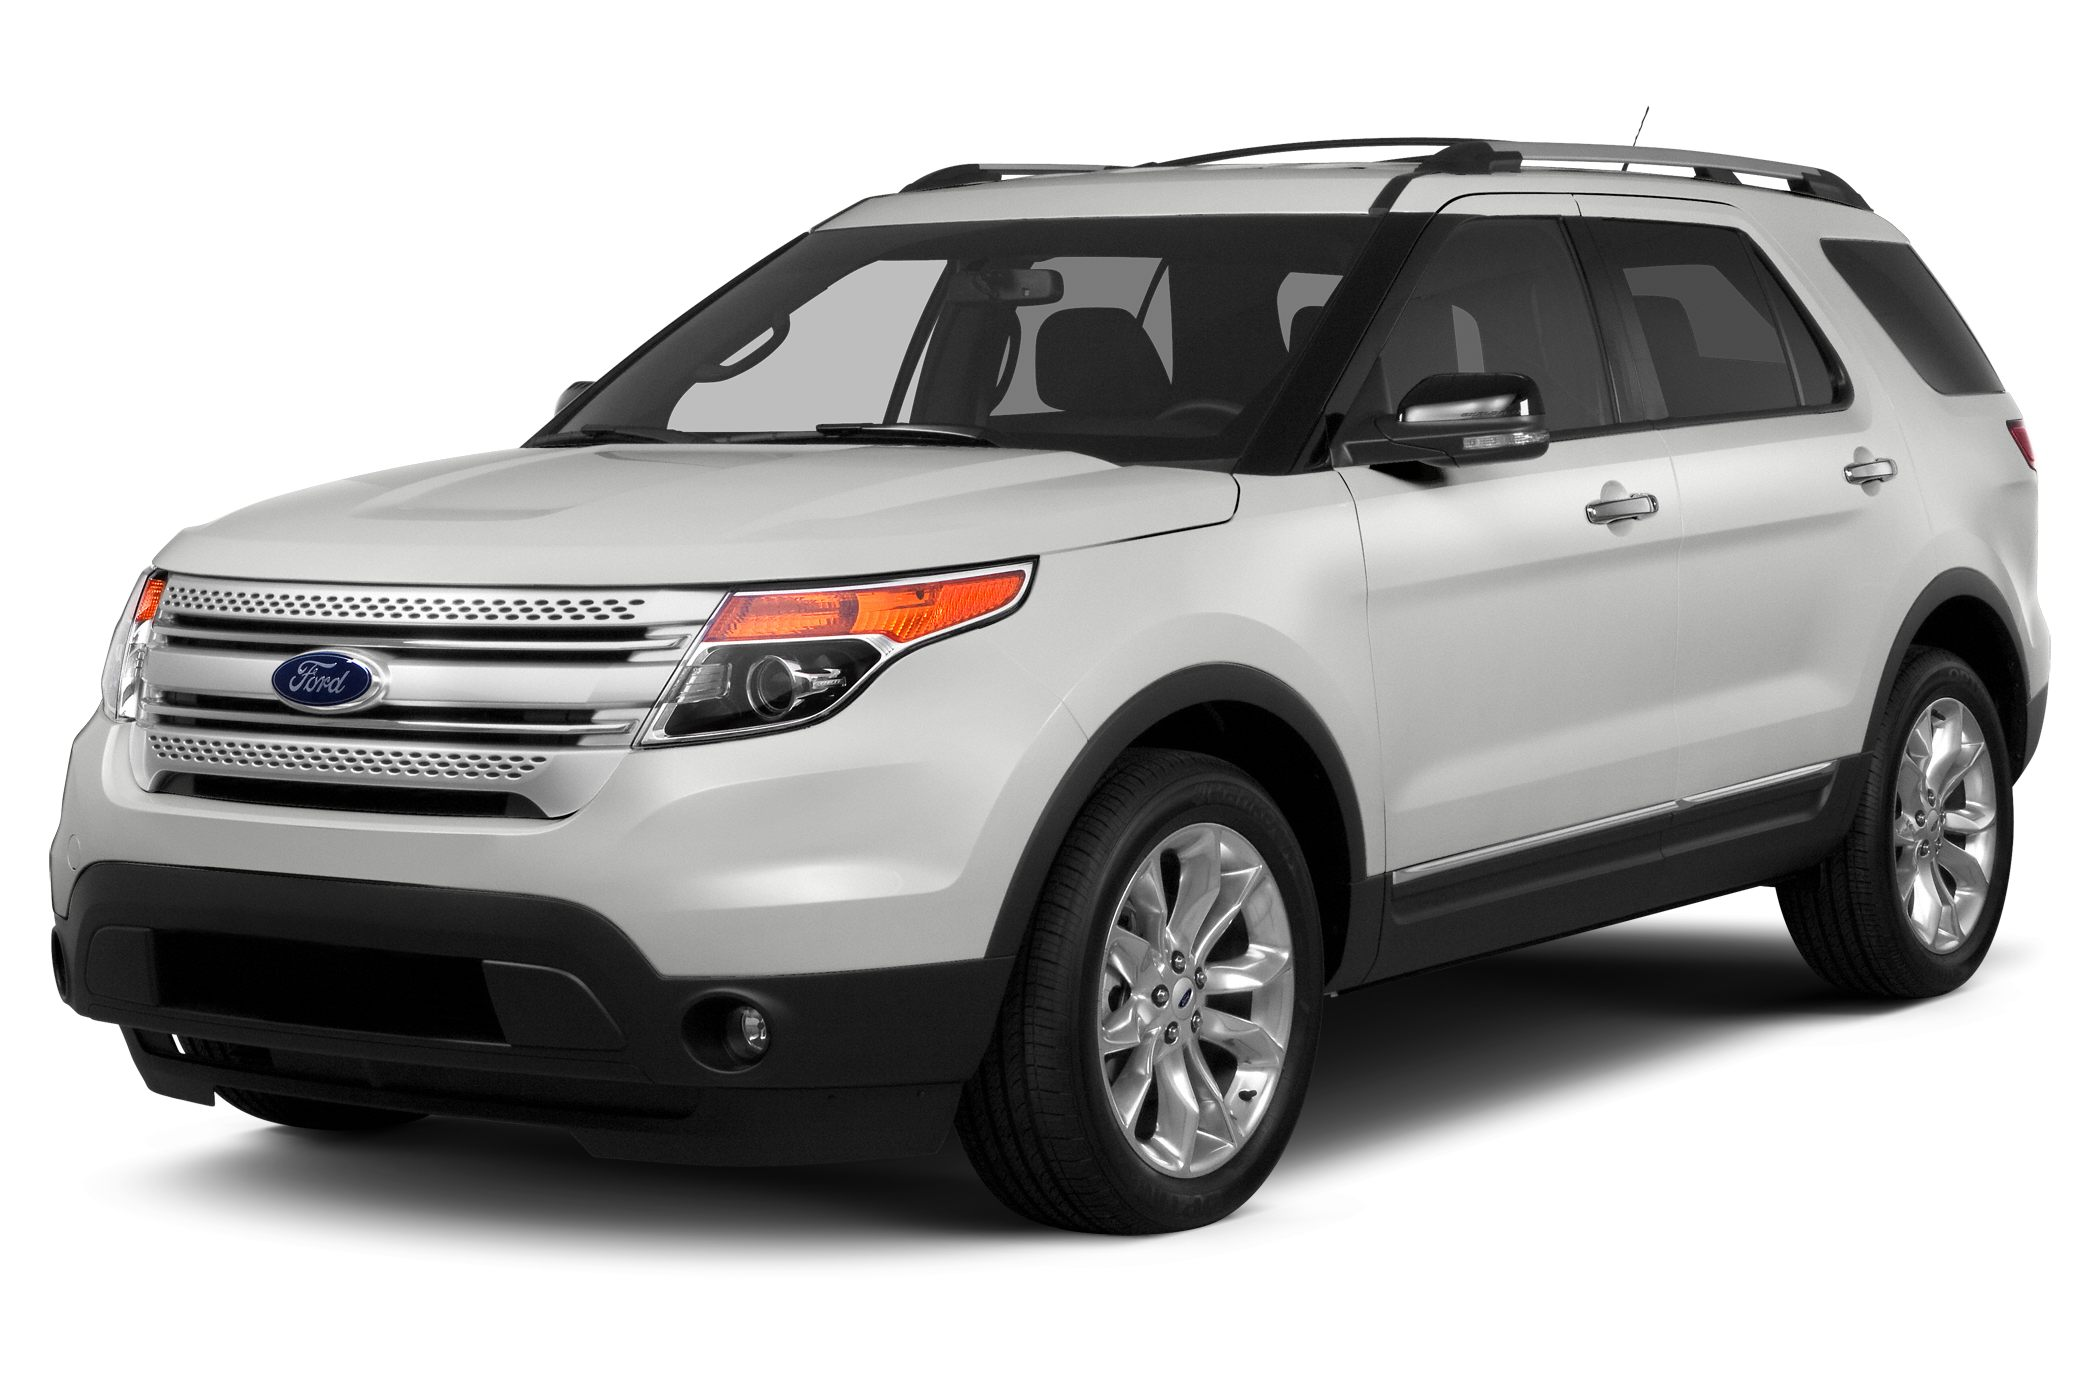 2015 Ford Explorer XLT SUV for sale in Menomonie for $41,405 with 10 miles.